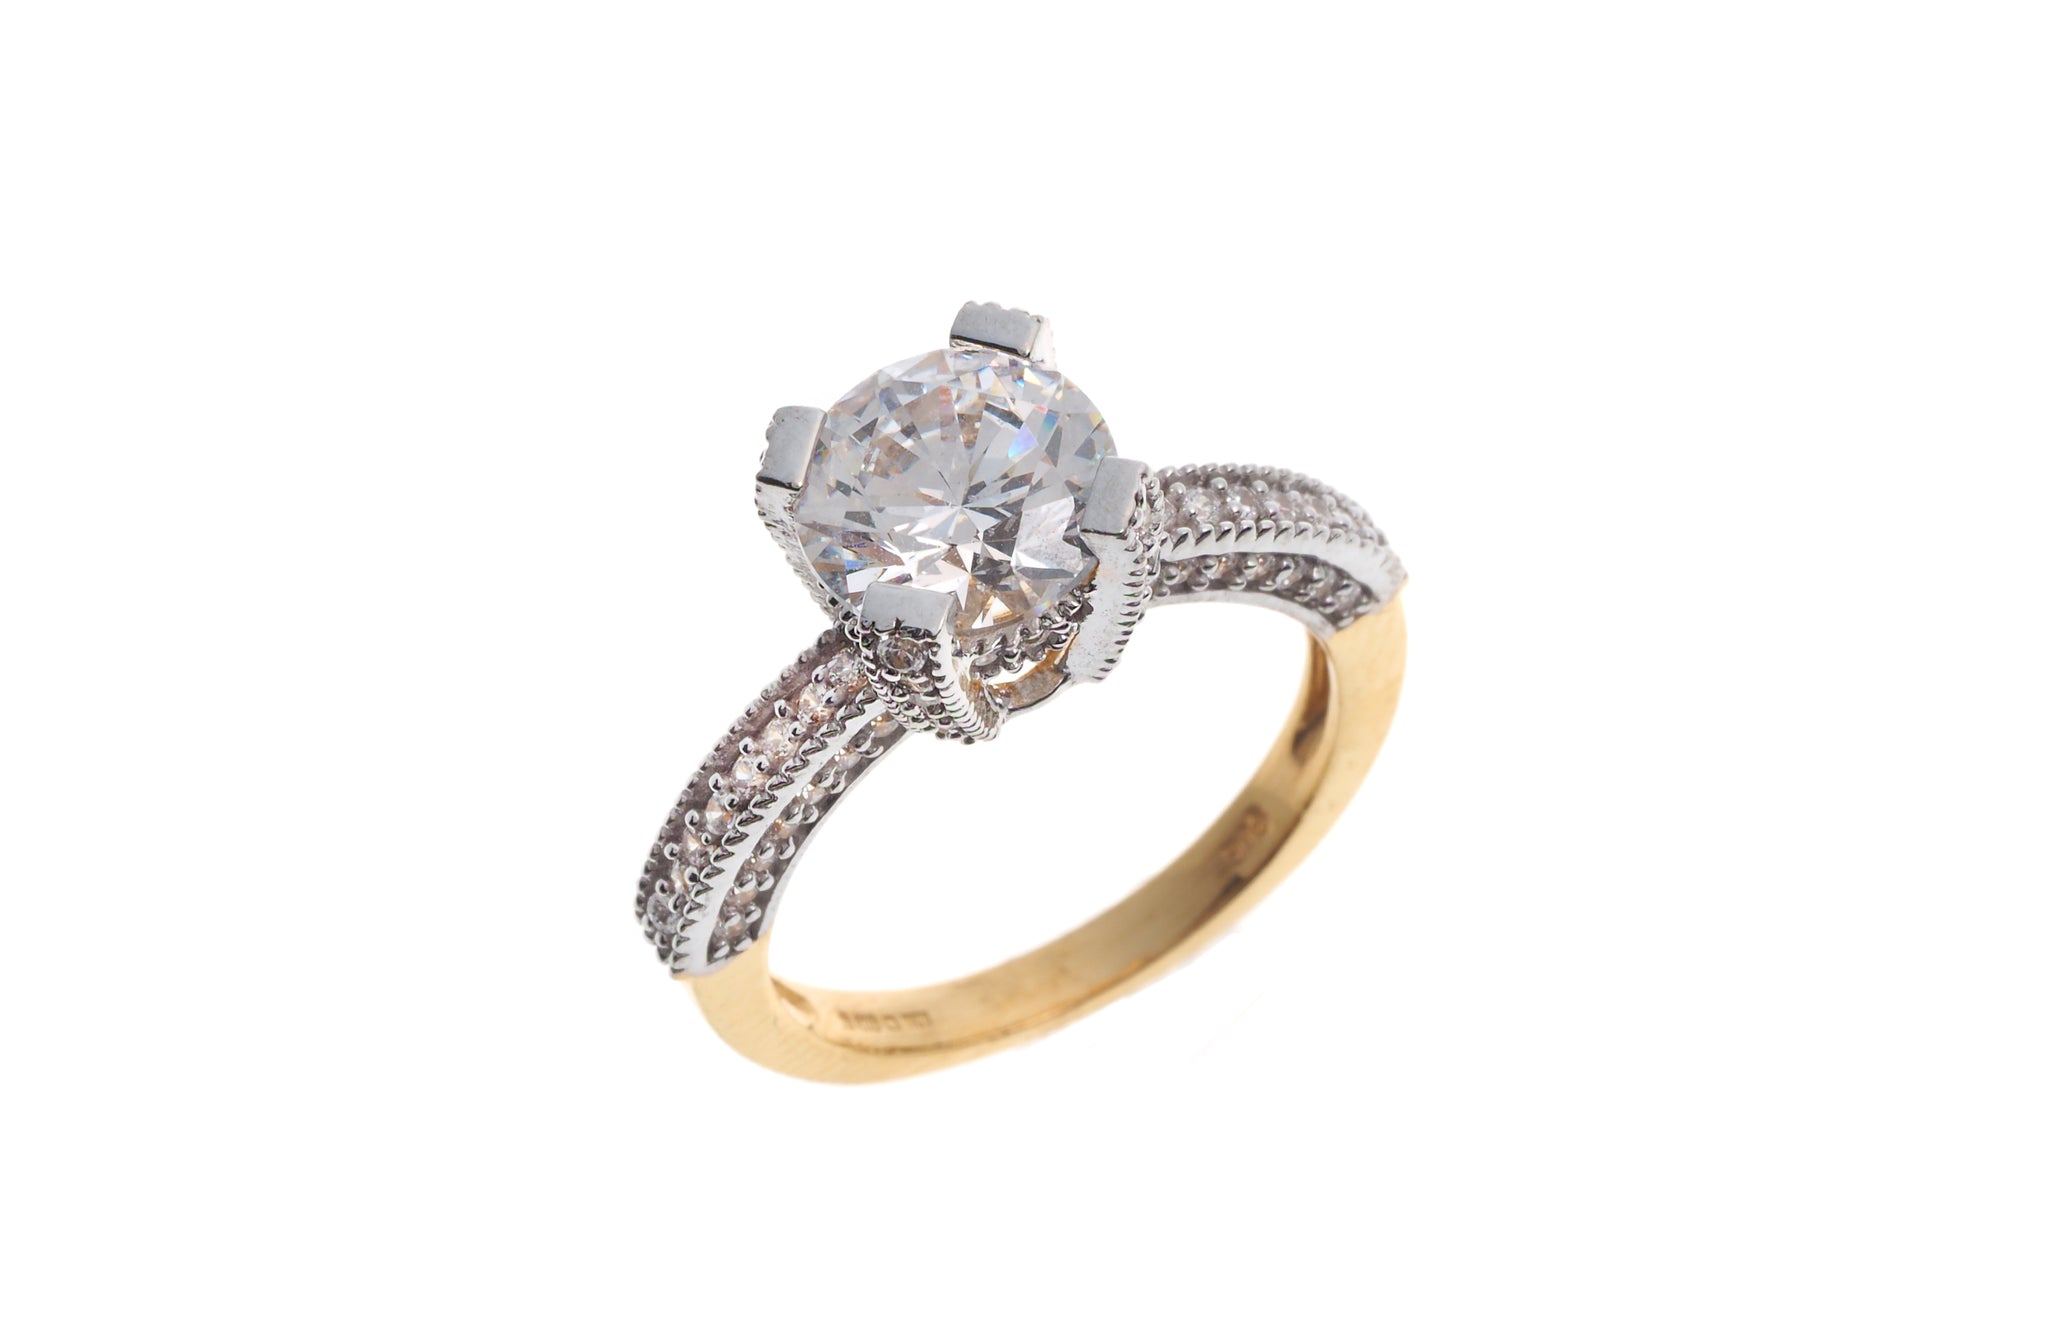 22ct Gold Cubic Zirconia Engagement Ring LR15170